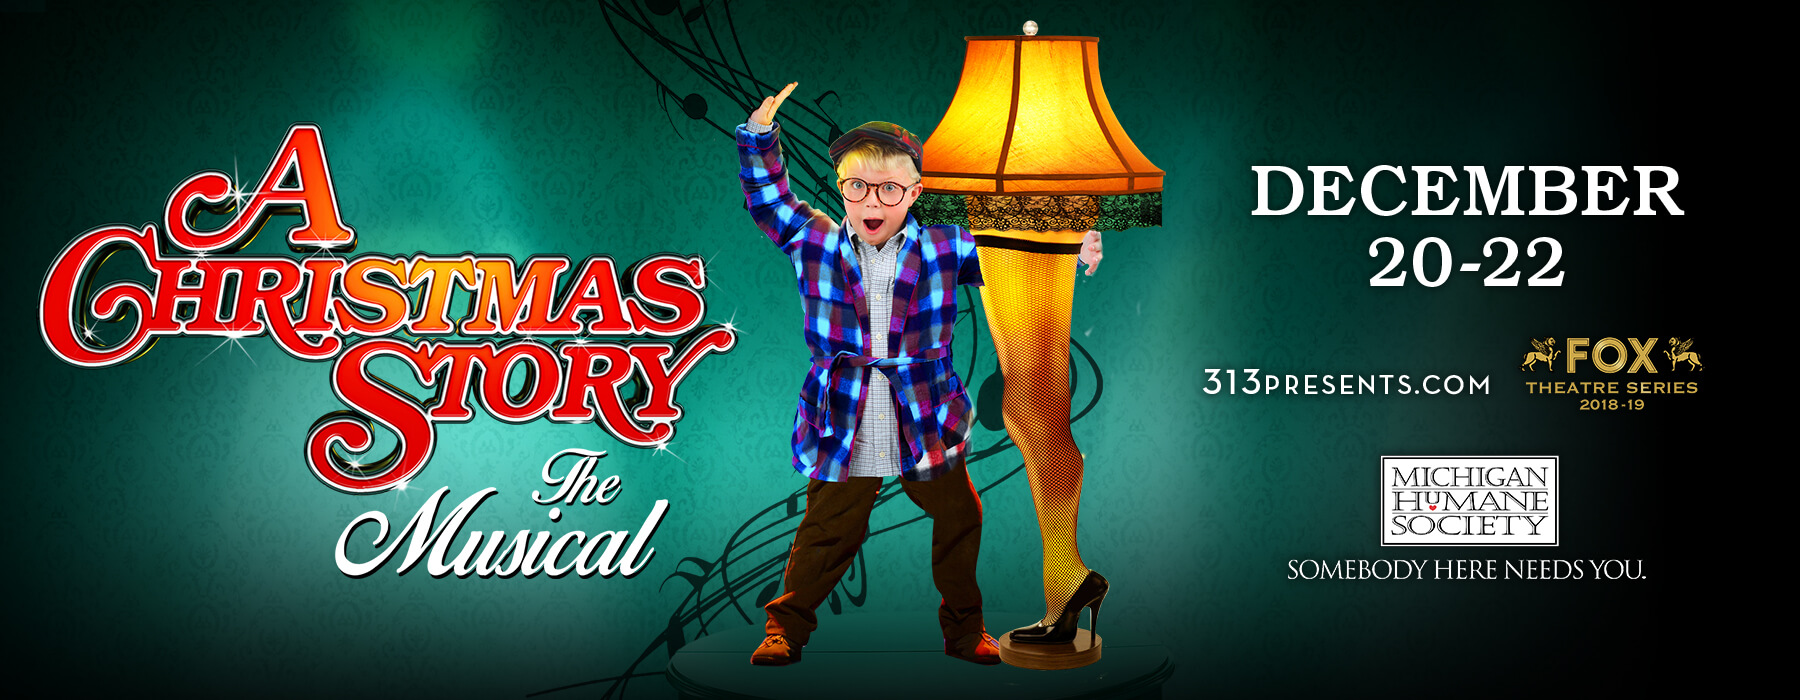 A Christmas Story Musical.A Christmas Story The Musical Mhs Promotion Michigan Humane Society